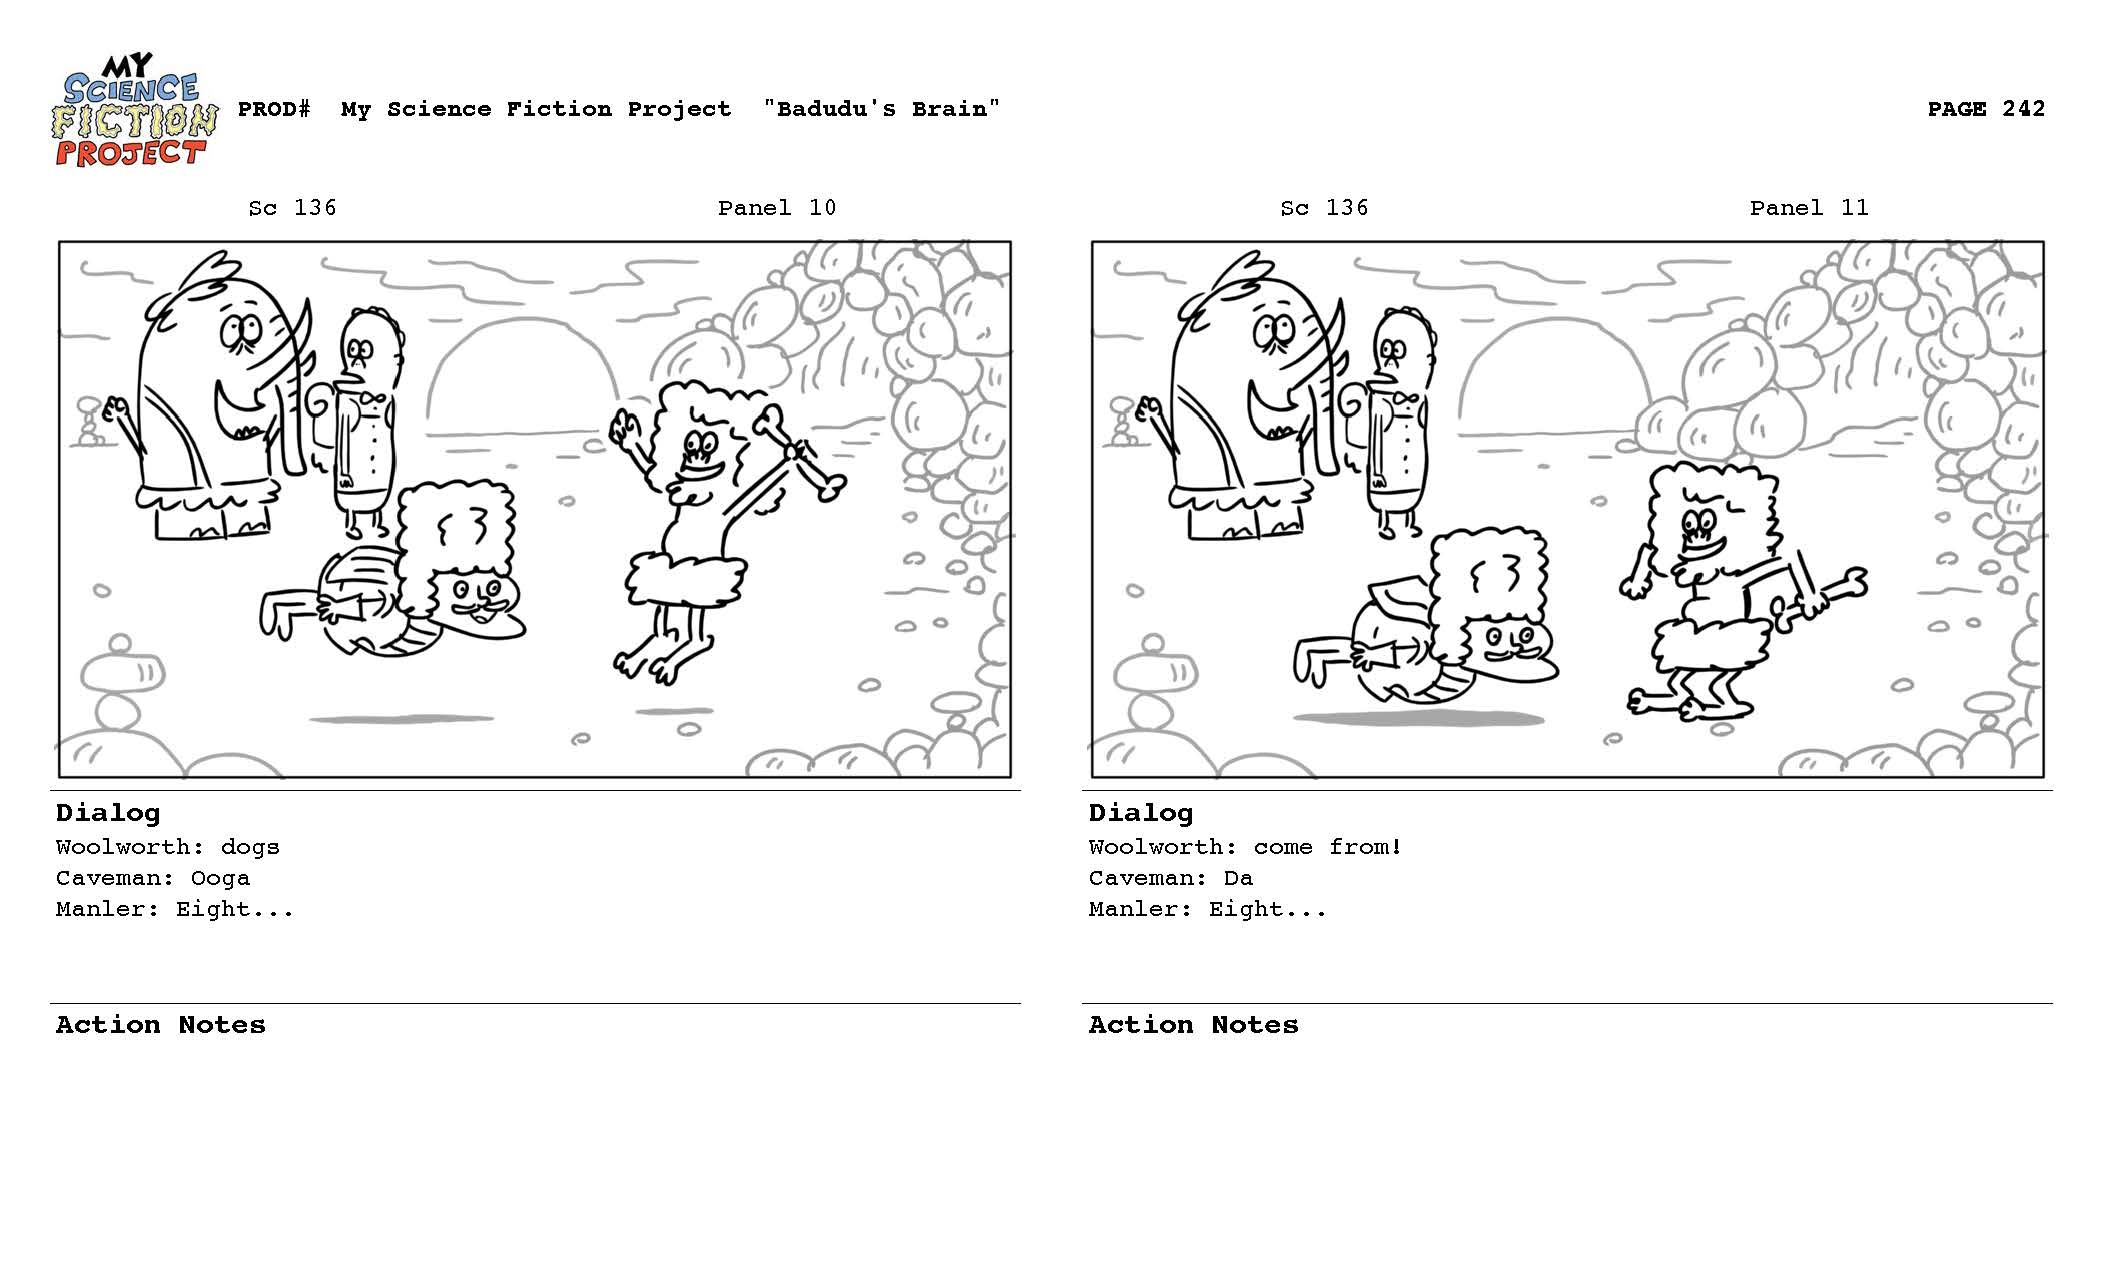 My_Science_Fiction_Project_SB_083112_reduced_Page_242.jpg